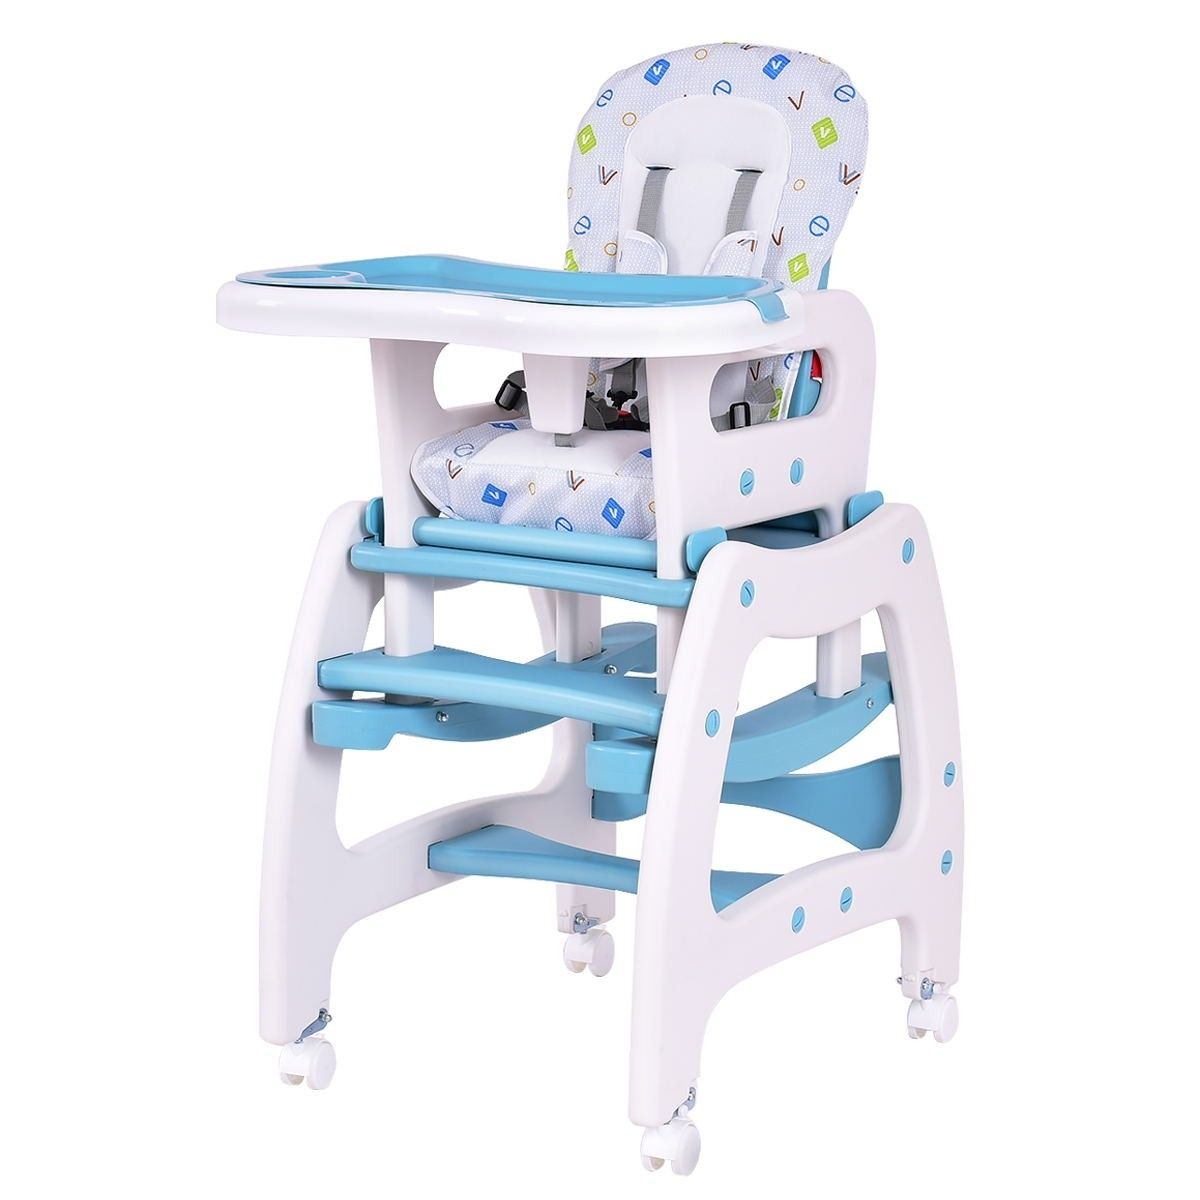 3 in 1 Baby High Chair Convertible Play Table | Baby high